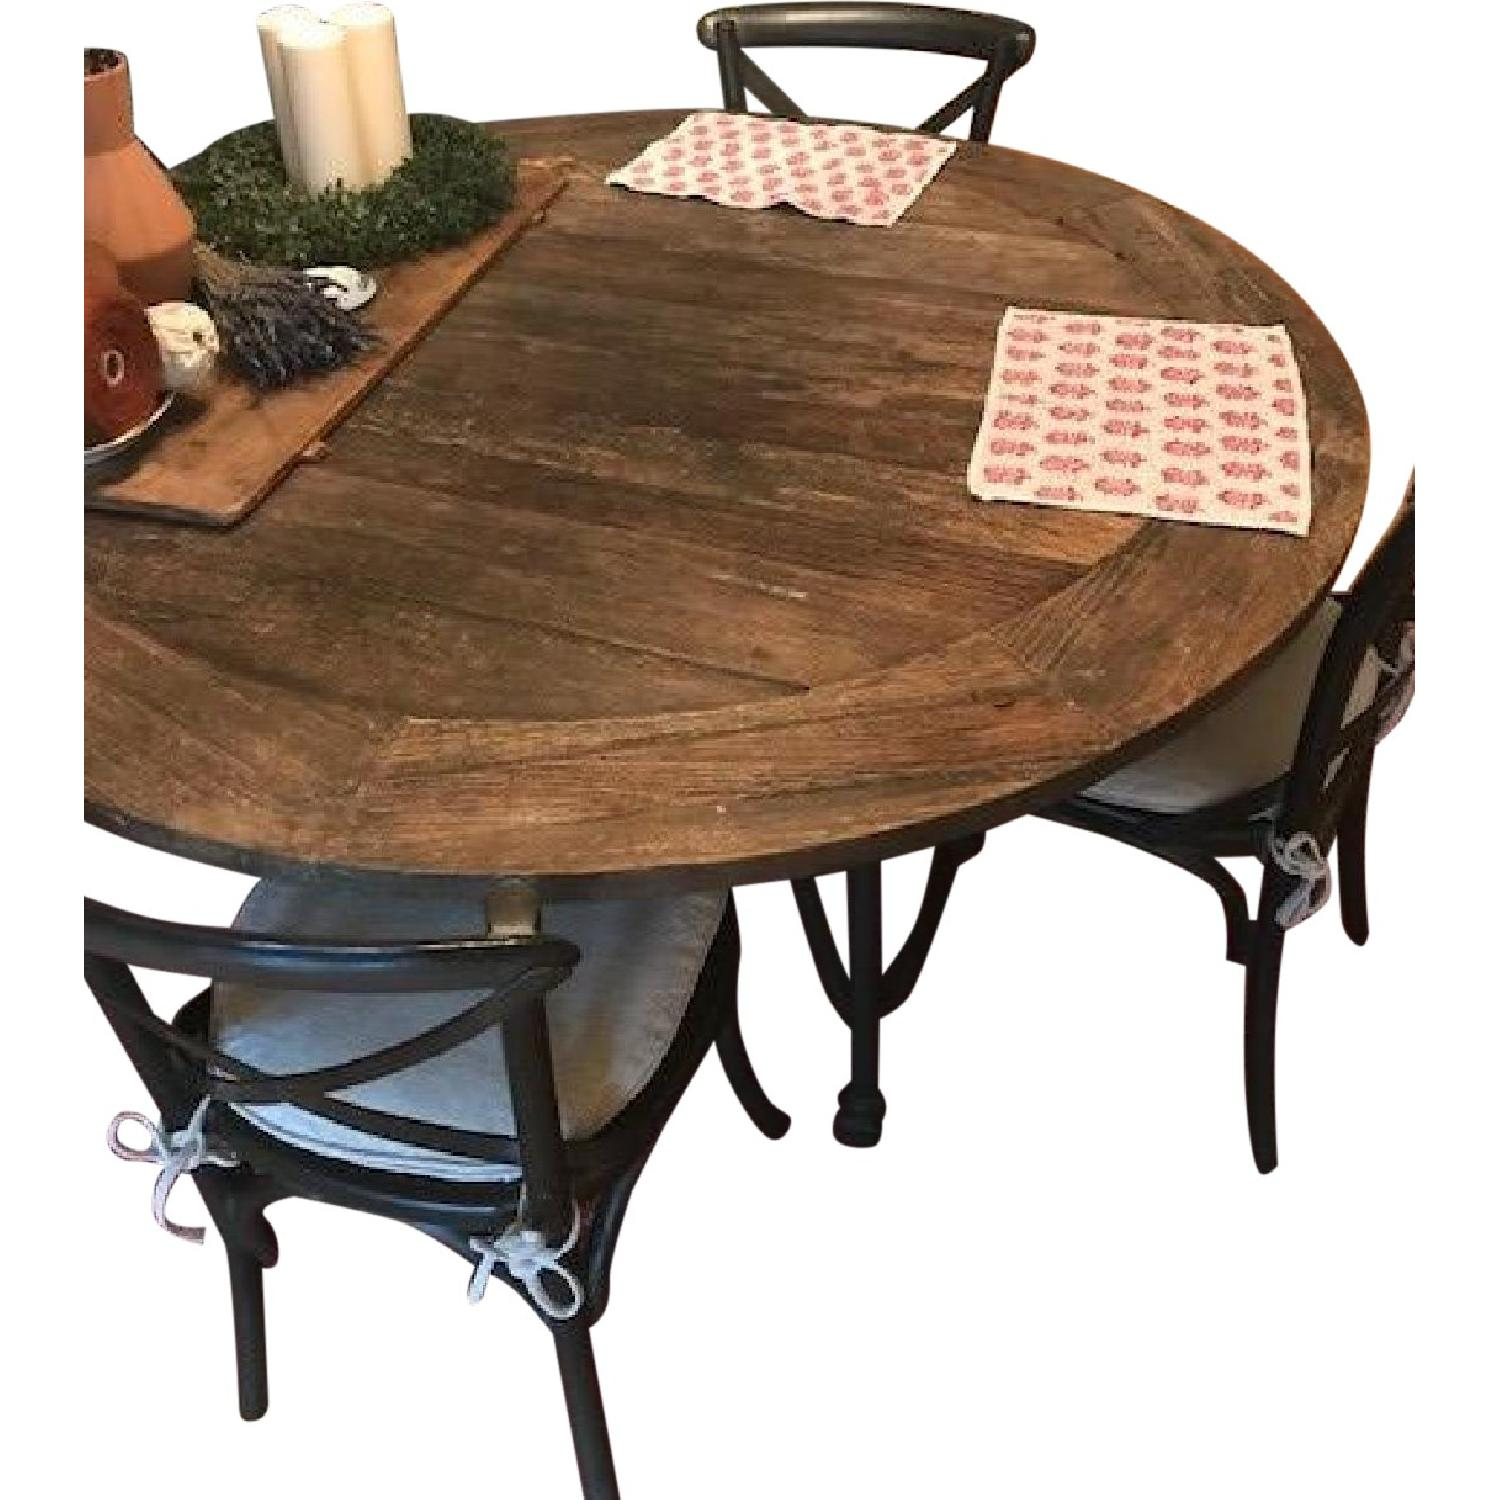 Restoration Hardware Flatiron Dining Table w/ 6 Chairs - image-0